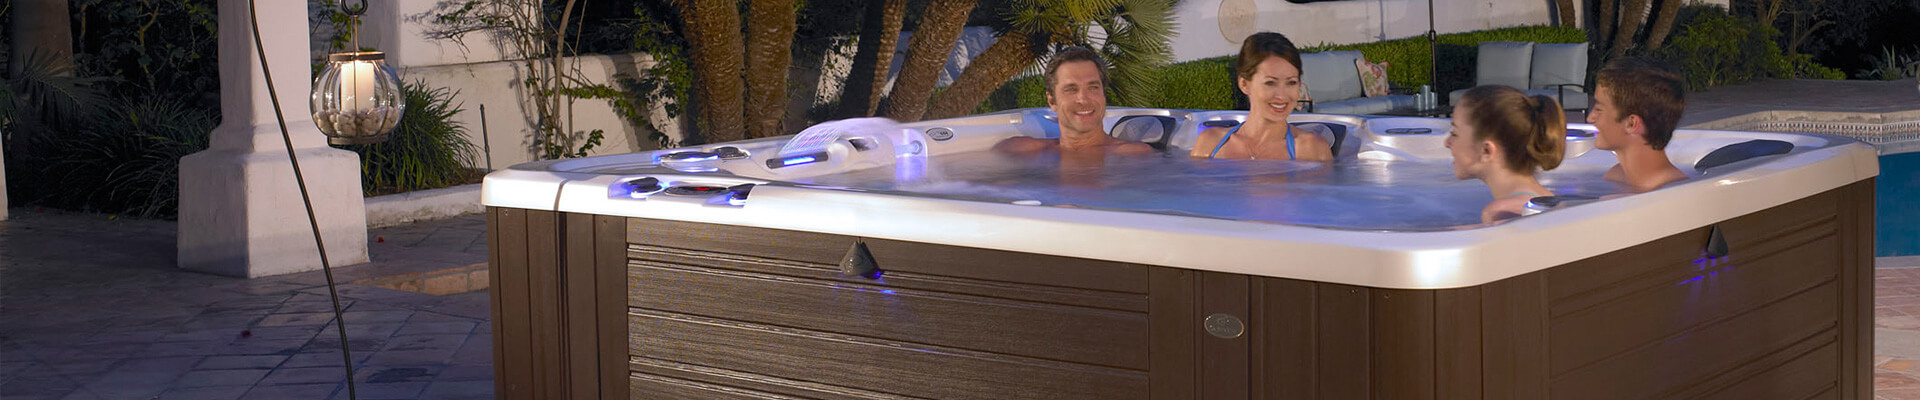 Top 3 Reasons to Love a Portable Spa at Home, Hot Tub Sale Brandon SD